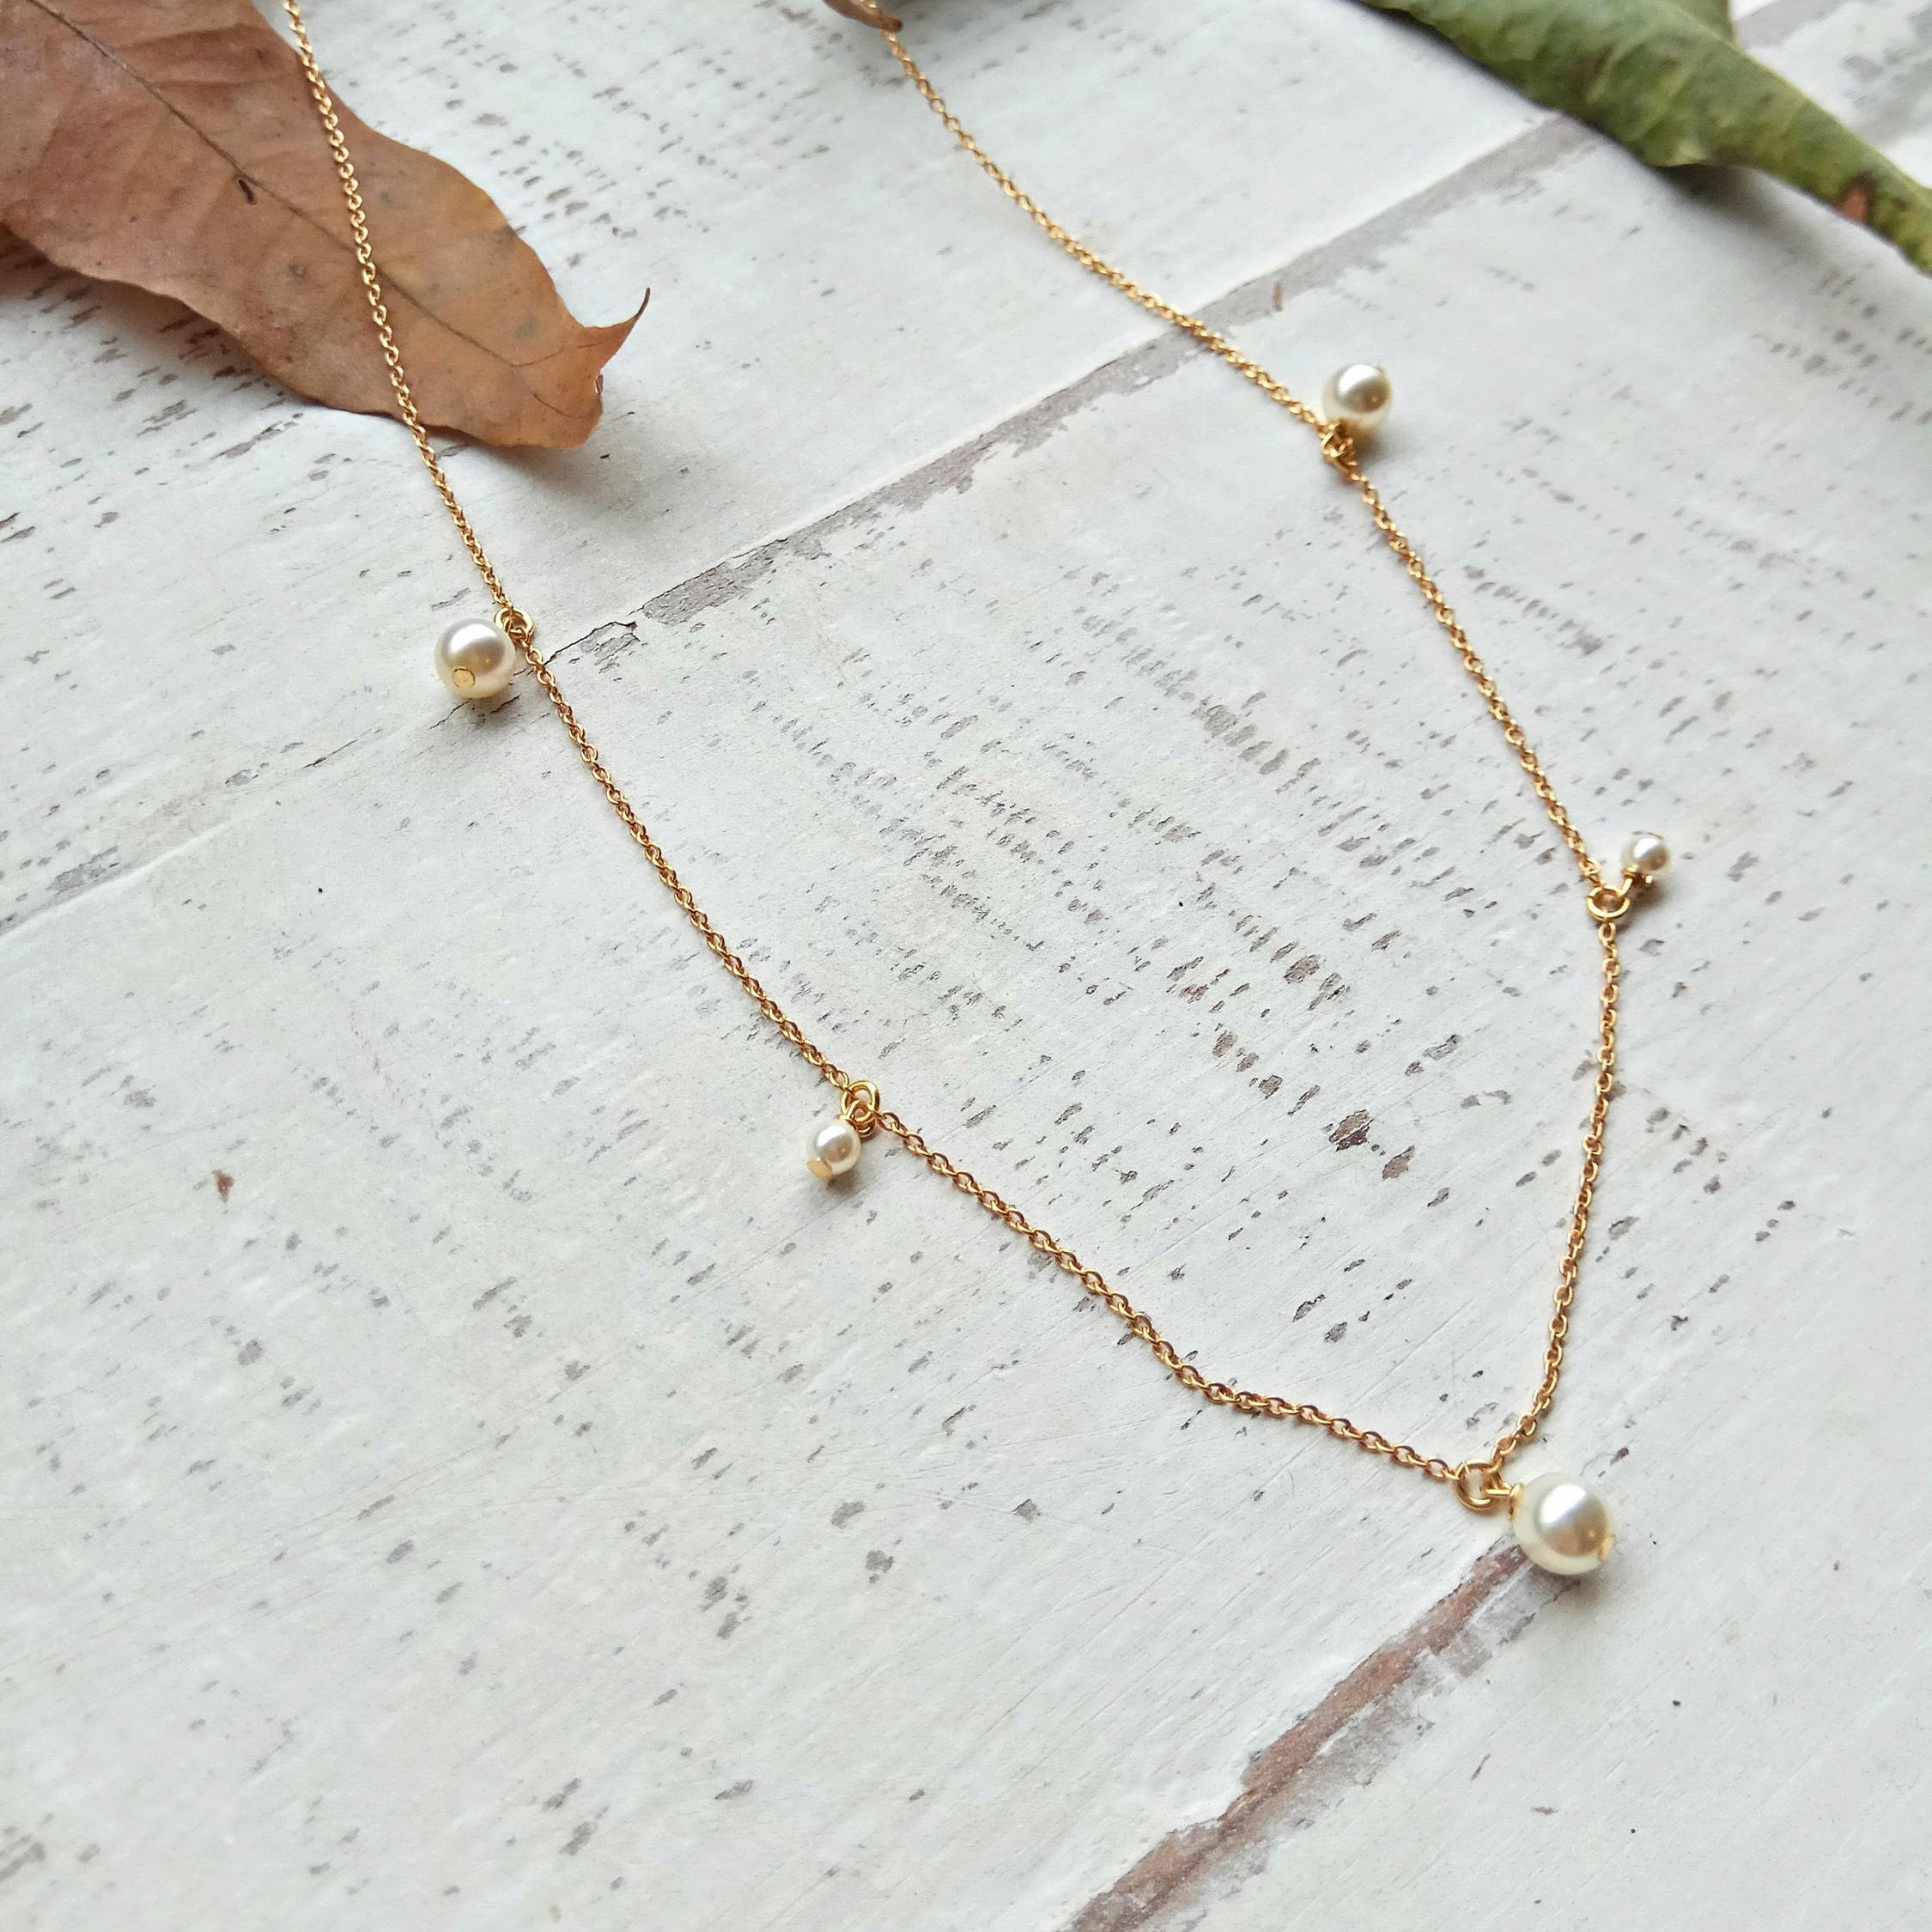 Gold Pearl Necklace, Bridal Jewelry Collection, Wedding Necklace, Bridesmaid Gift, Handmade, Jewelry Gift for Her, Valentine's Day Necklace